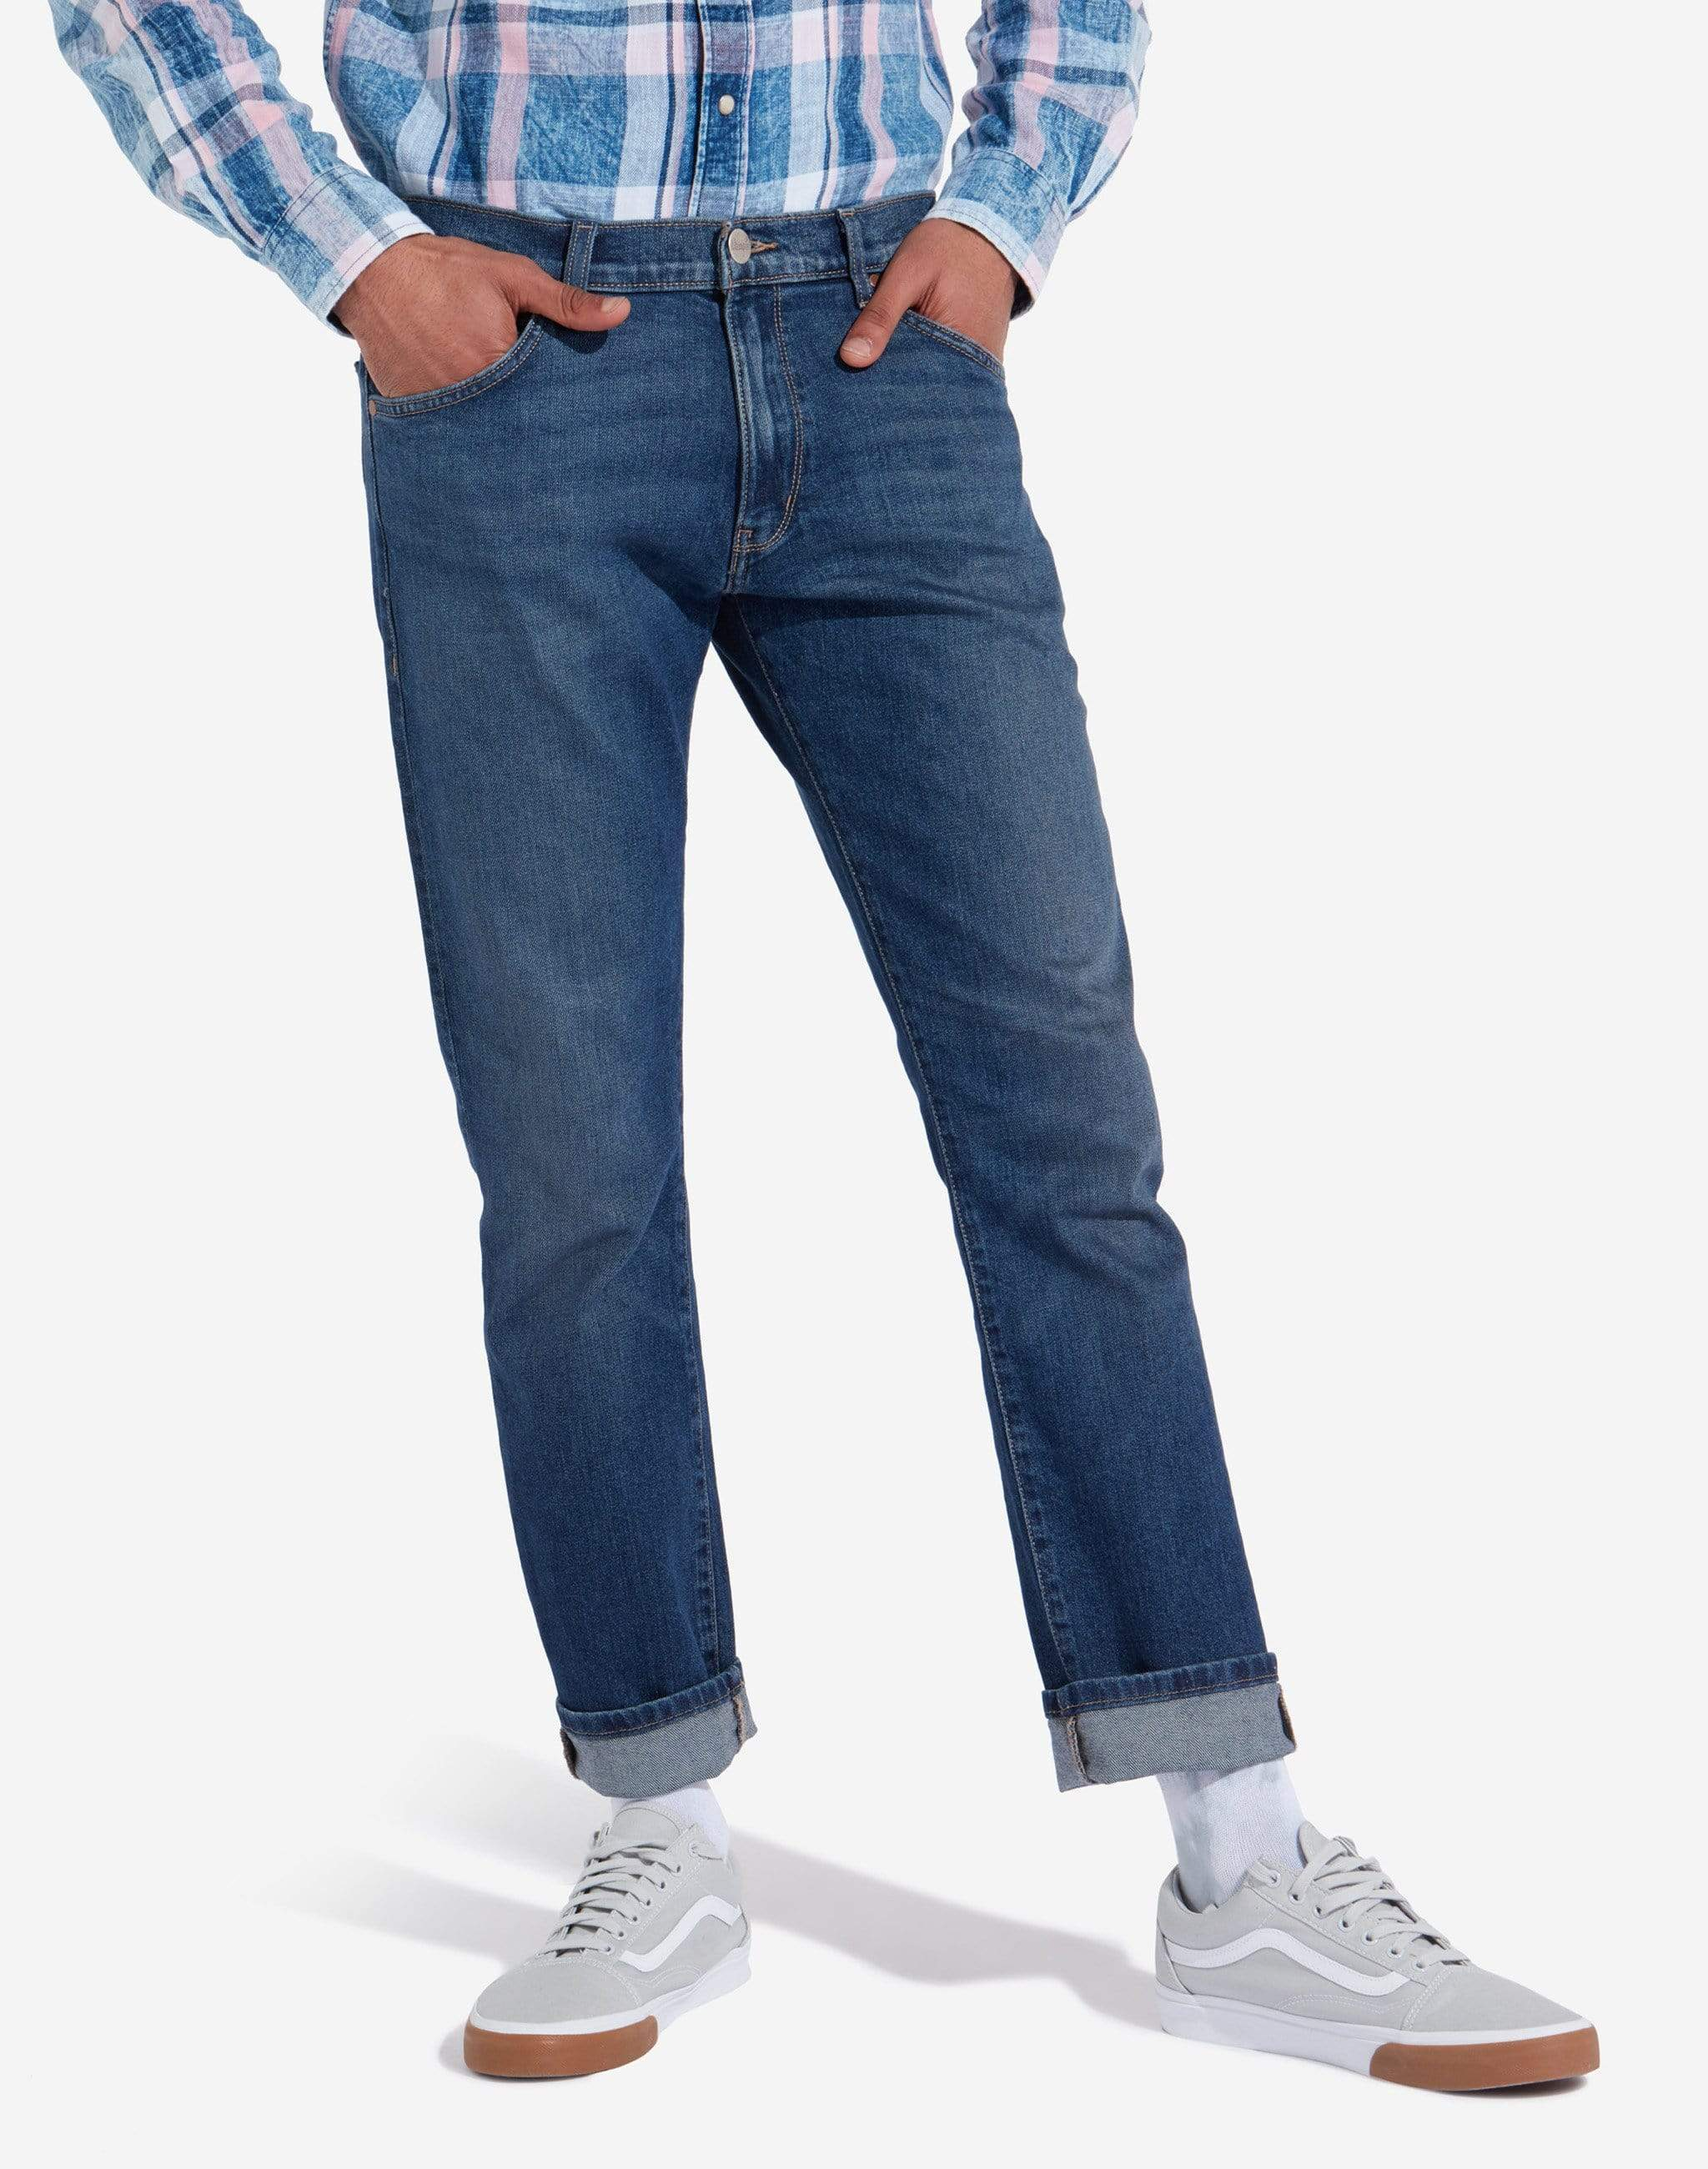 Wrangler Larston Slim Tapered Mens Jeans - Indigo Wit W30 L30 W18S2325F30S 5400597922467 Wrangler Jeans Wrangler Larston Slim Tapered Mens Jeans - Indigo Wit - Jeans and Street Fashion from Jeanstore